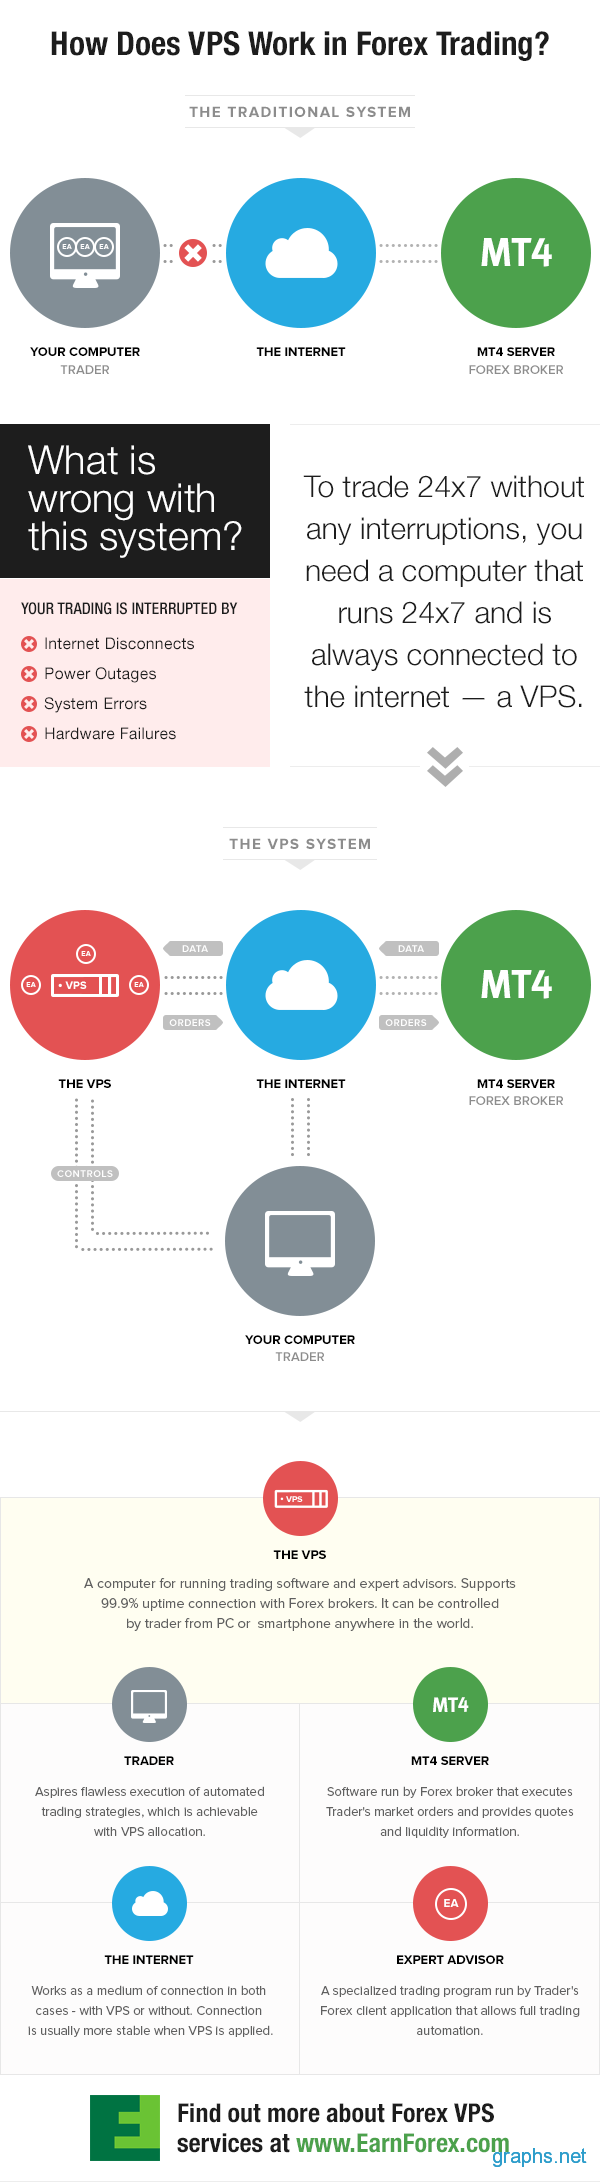 VPS For Forex Trading